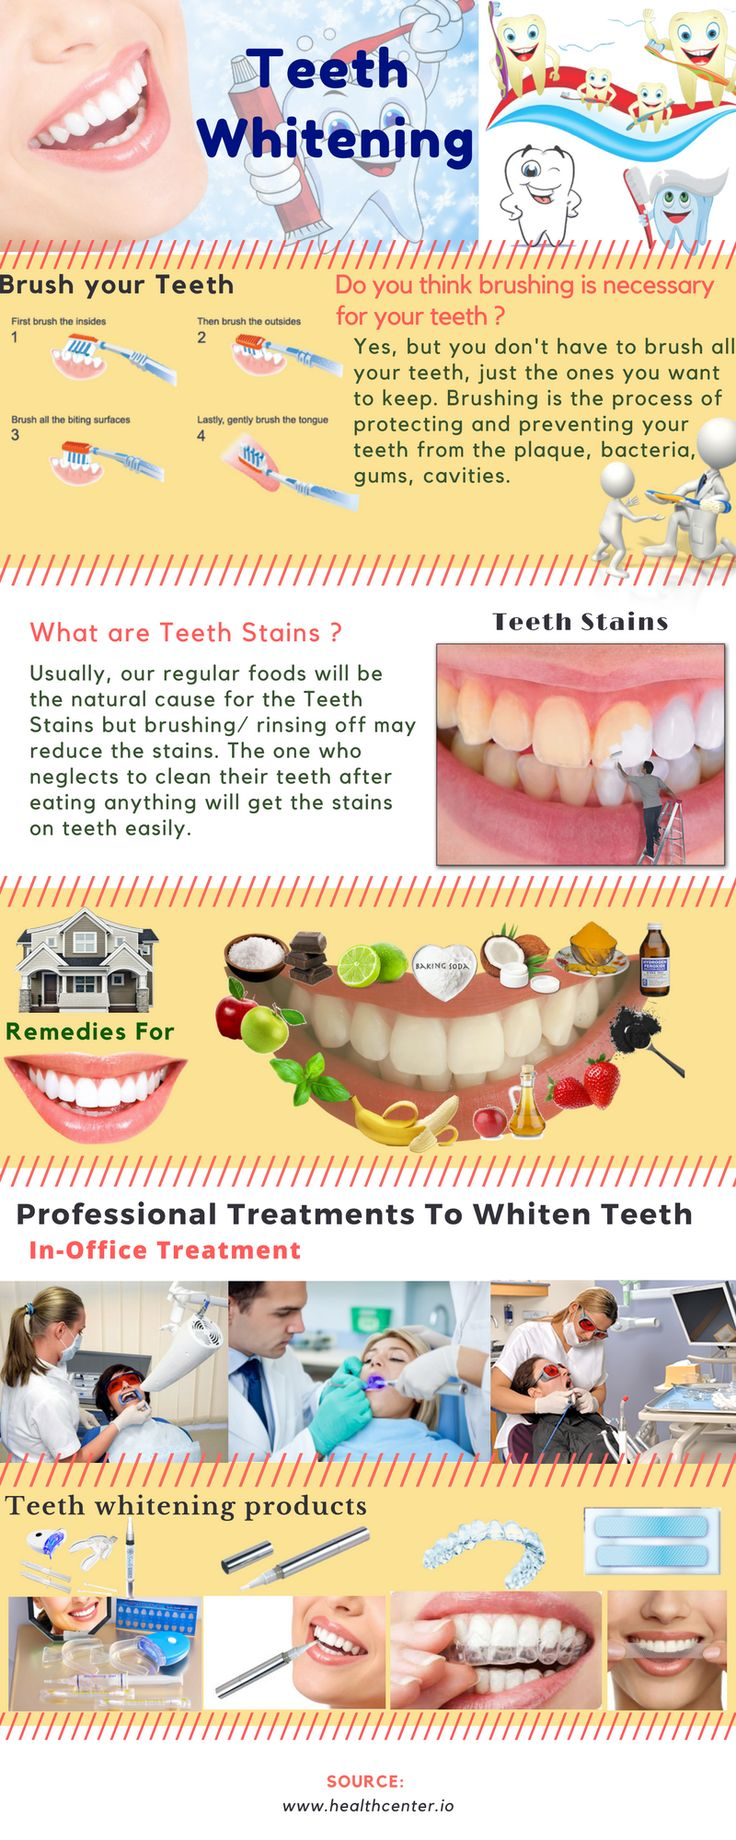 How to make your Teeth White? Teeth Whitening Tips listed. Try 16 Natural ways of Whitening Teeth. Tips remove Stains from Teeth & Whitening Products, Kits.